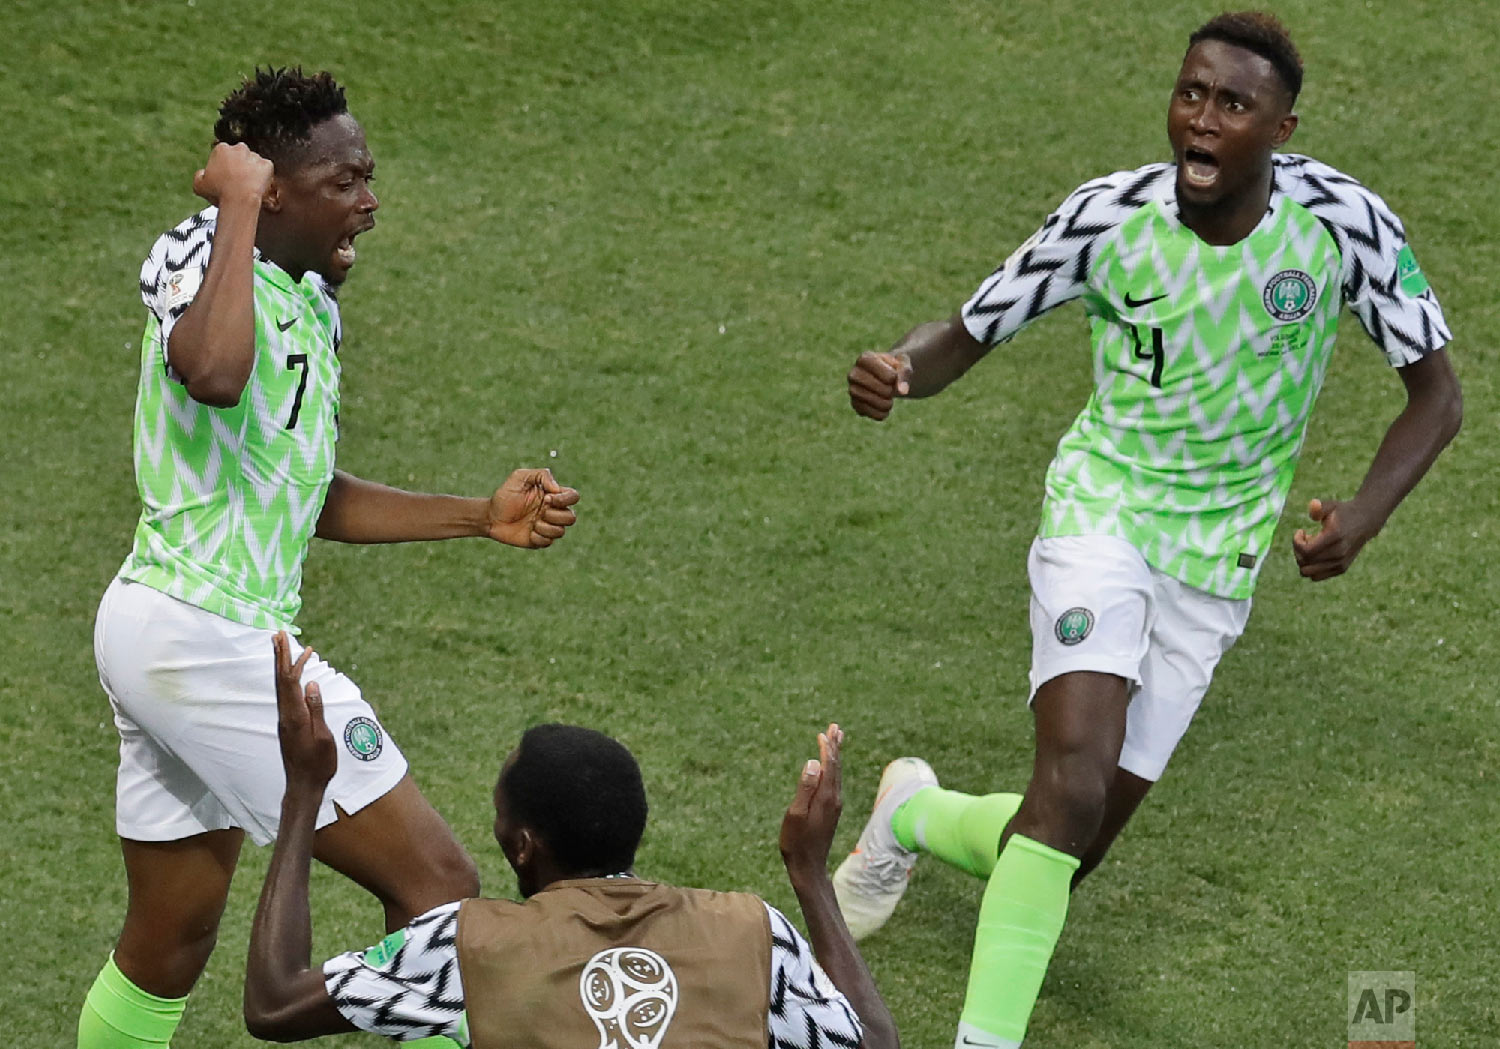 Nigeria's Ahmed Musa, left, celebrates with teammates after scoring his side's opening goal during the group D match between Nigeria and Iceland at the 2018 soccer World Cup in the Volgograd Arena in Volgograd, Russia, Friday, June 22, 2018. (AP Photo/Themba Hadebe)